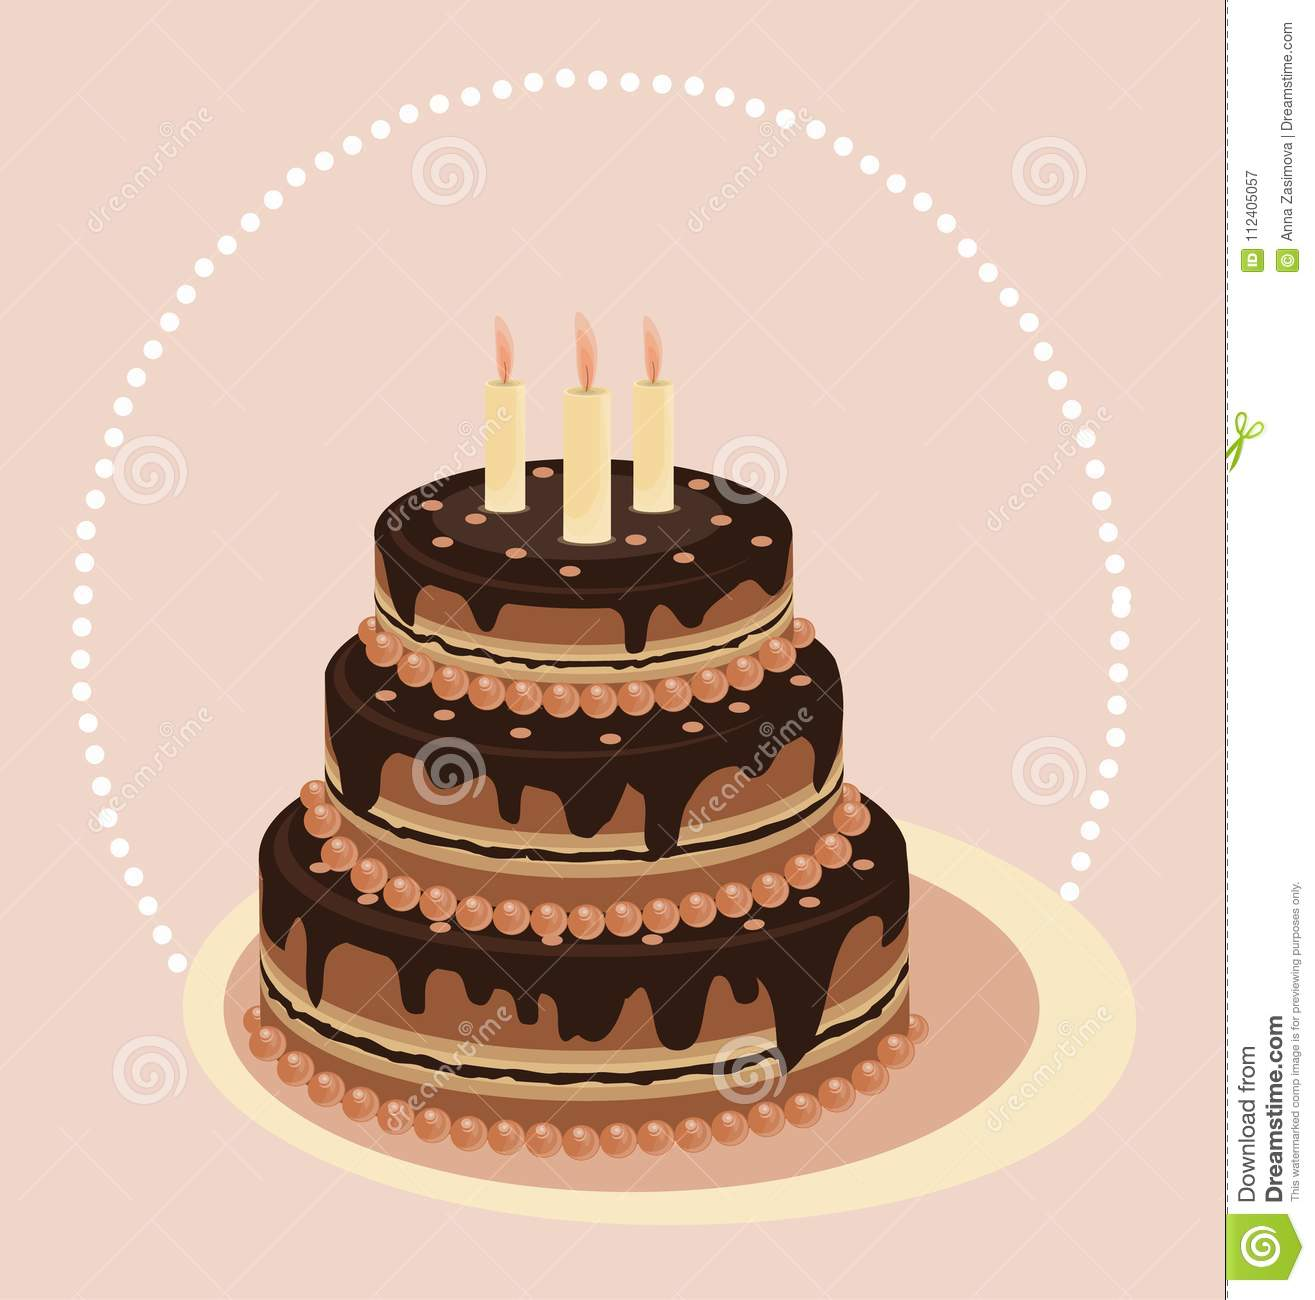 Chocolate Tiered Cake Cake With Candles Vector Card Festive Cakes